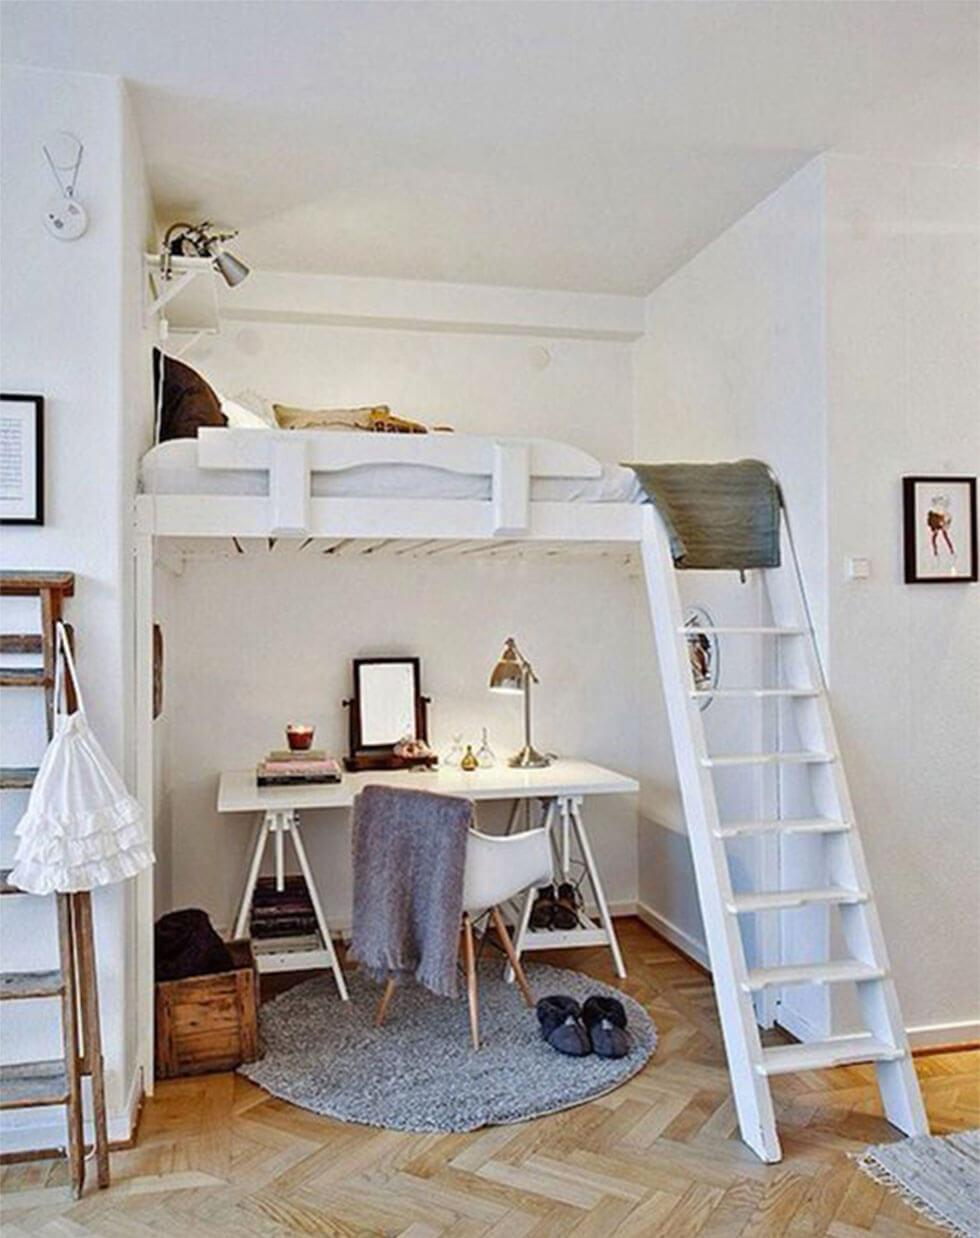 Loft bedroom with a white mezzanine bed